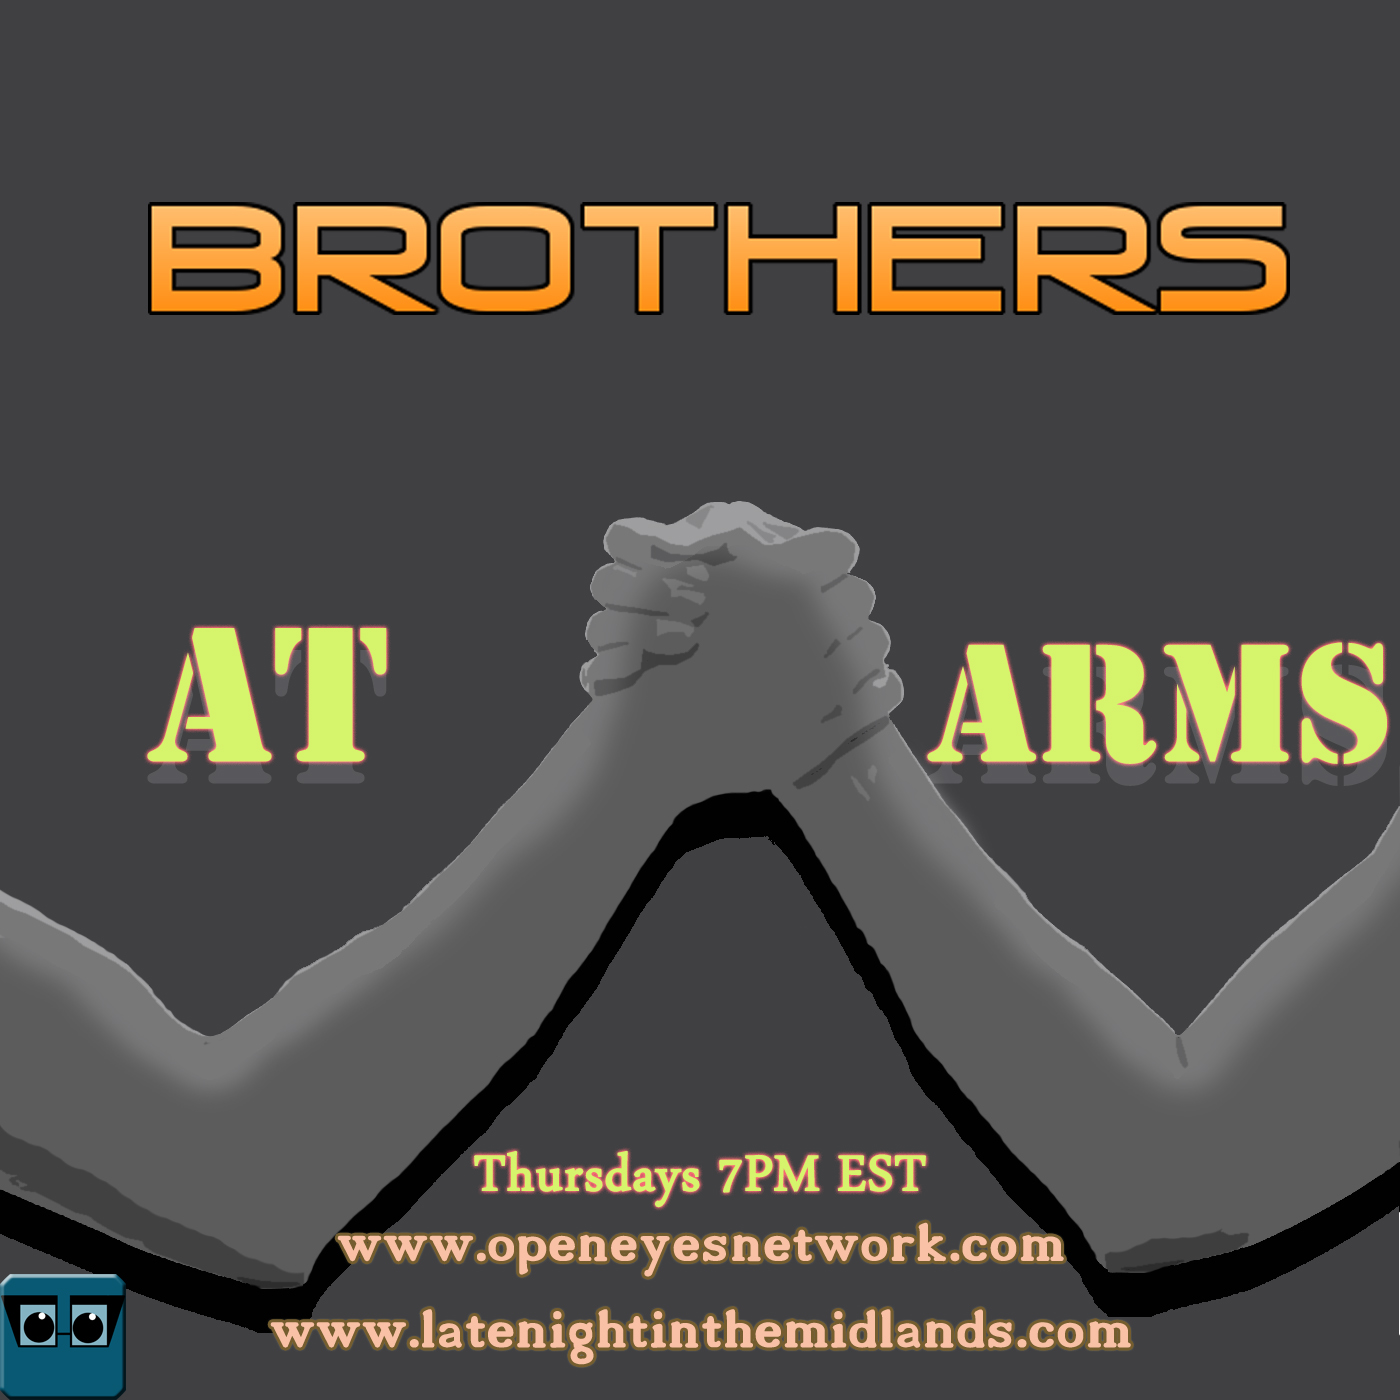 Brothers At Arms Podcast   NEW Show every other Thursday!